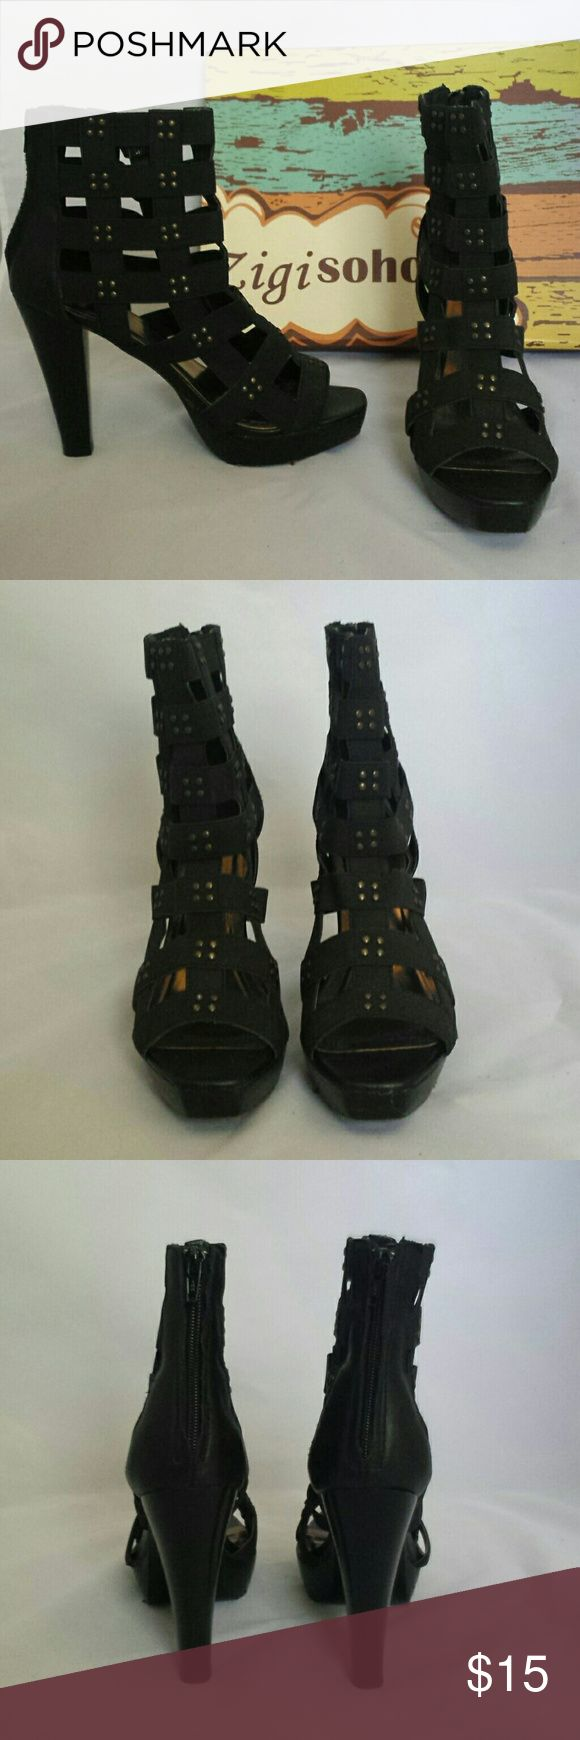 Zigi Soho Black Cage Shoes Zigi Soho Black Cage Shoes. Zipper back.  Elastic straps with small rivets.  Great condition except soles worn.  No rips or stains. Zigi Soho Shoes